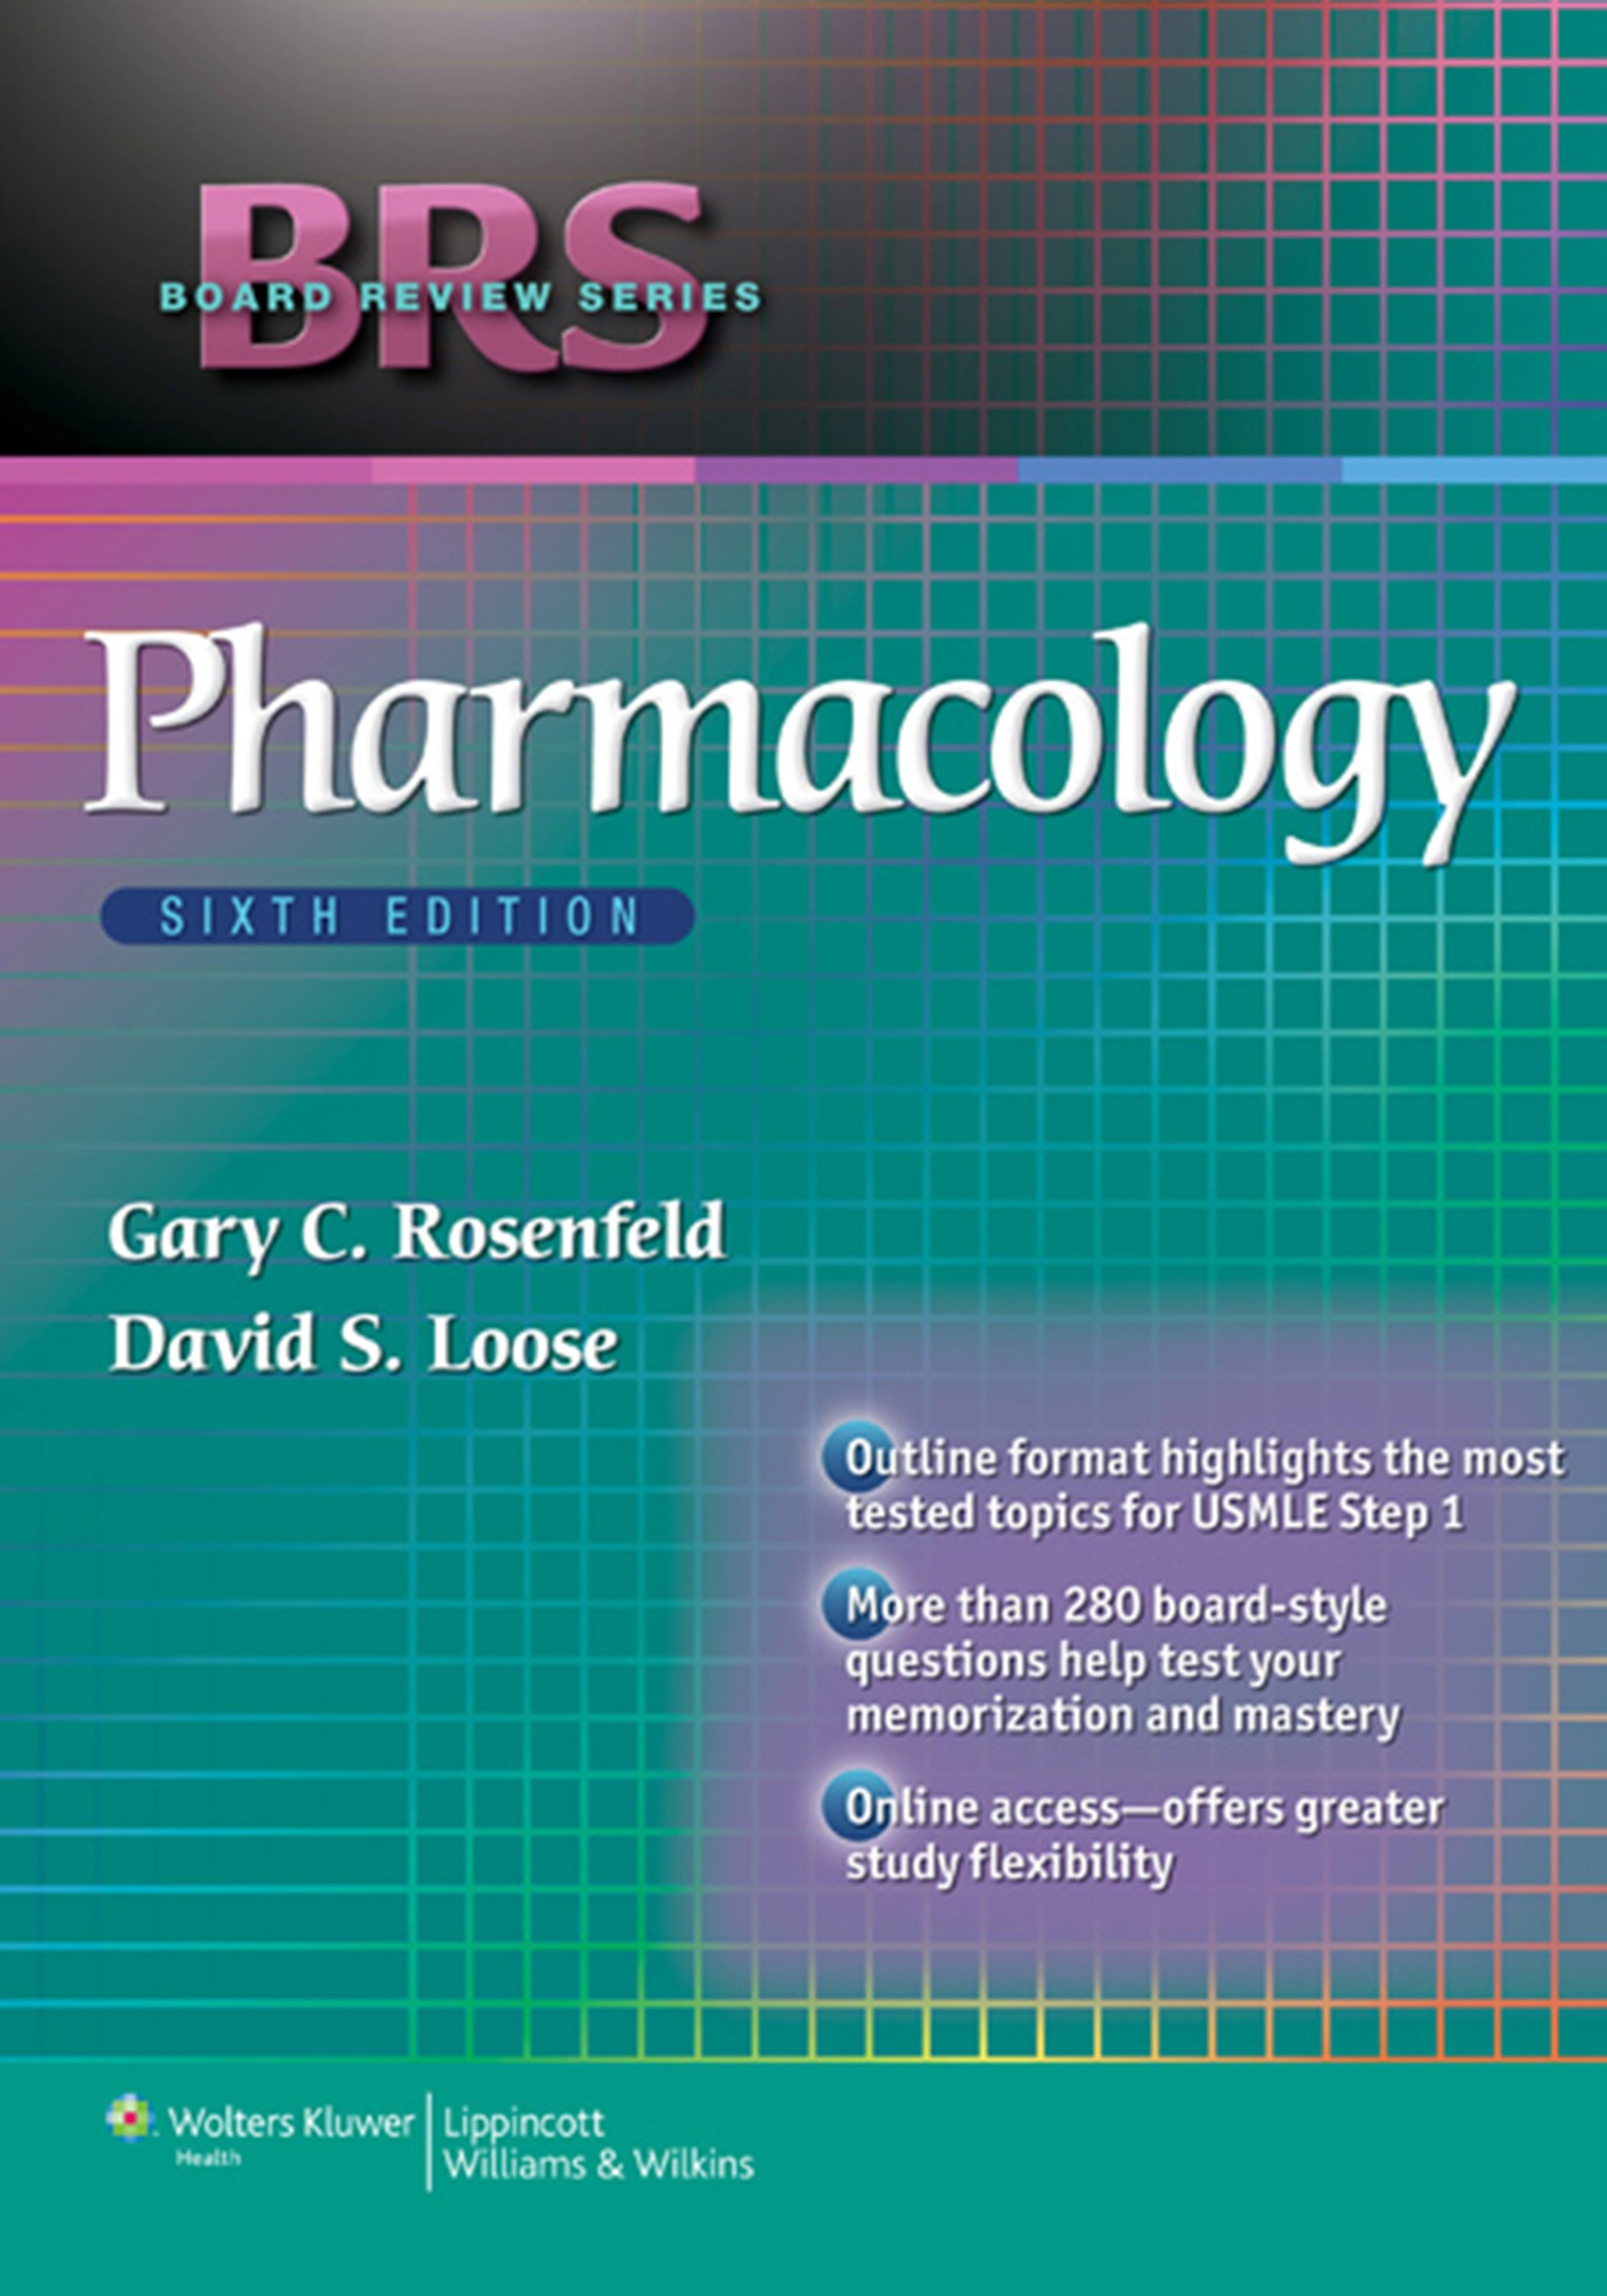 Download the Book: BRS Pharmacology 6th Edition pdf For Free,Table of  Contents: 1. General Principles of Drug Action I. Dose–Response  Relationships.